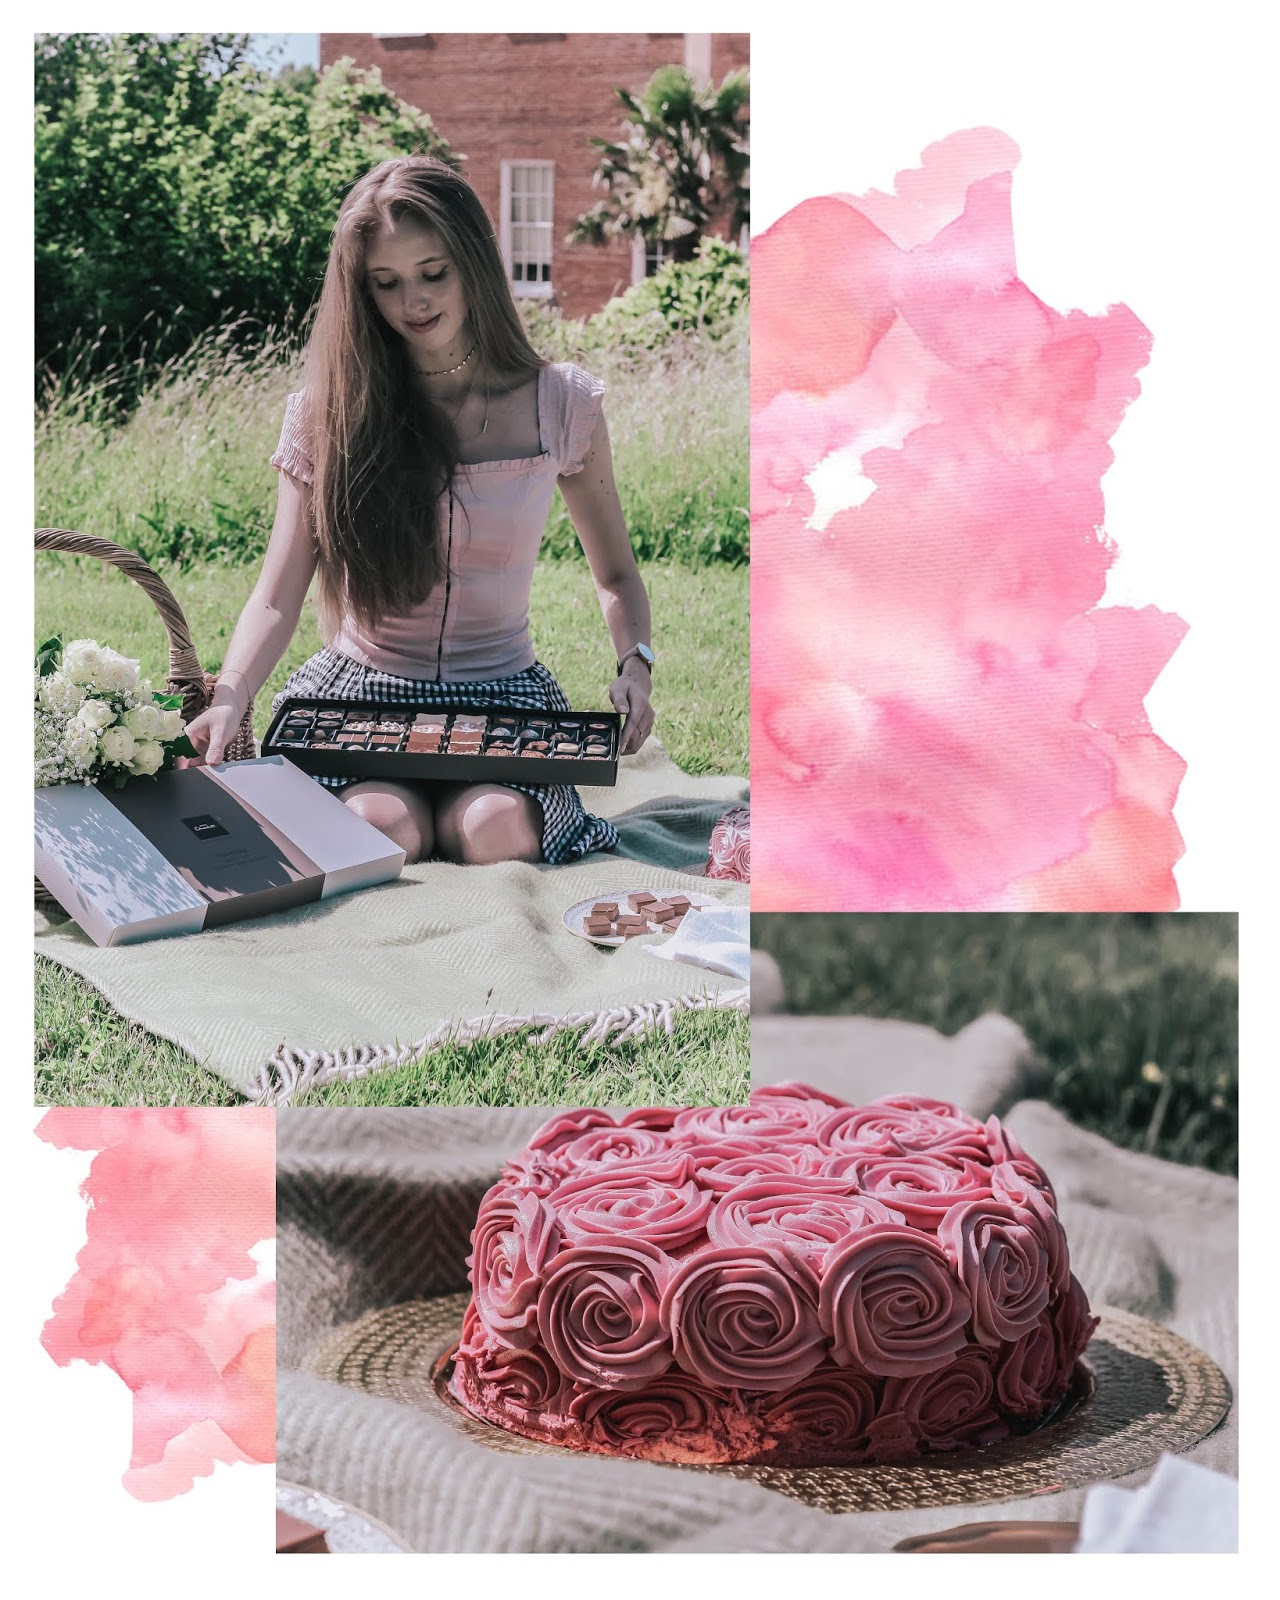 Pretty Pink British Picnic Collage Photoshoot